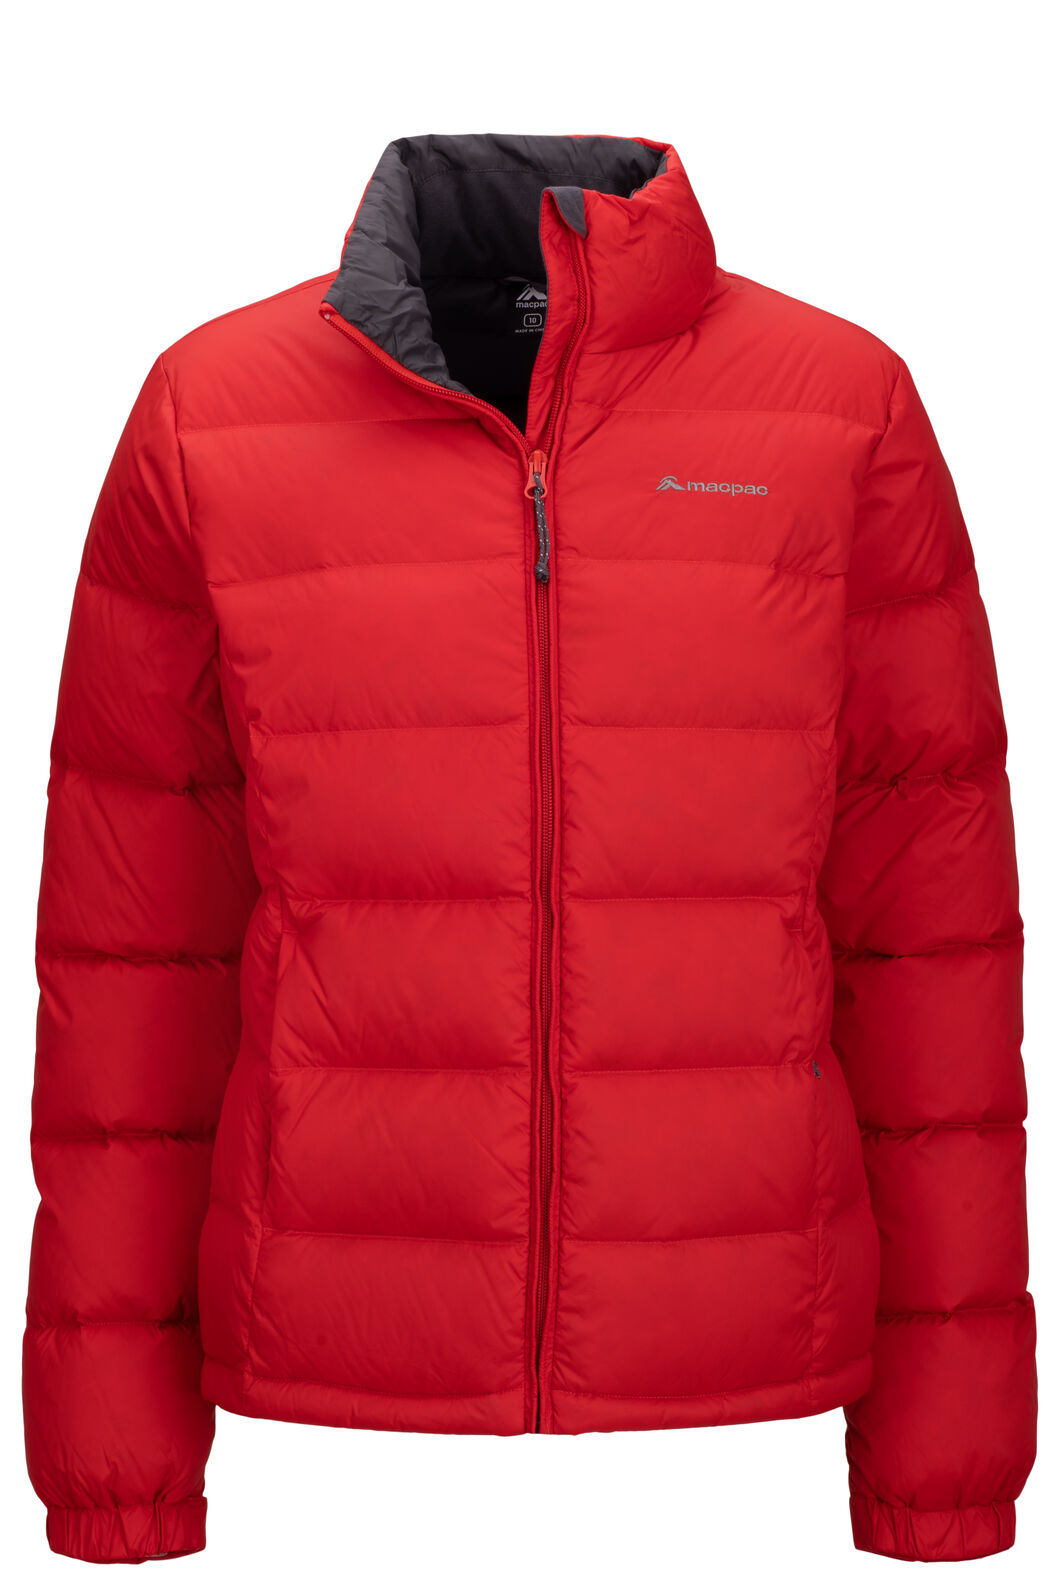 Macpac Halo Down Jacket — Women's, Aurora Red, hi-res